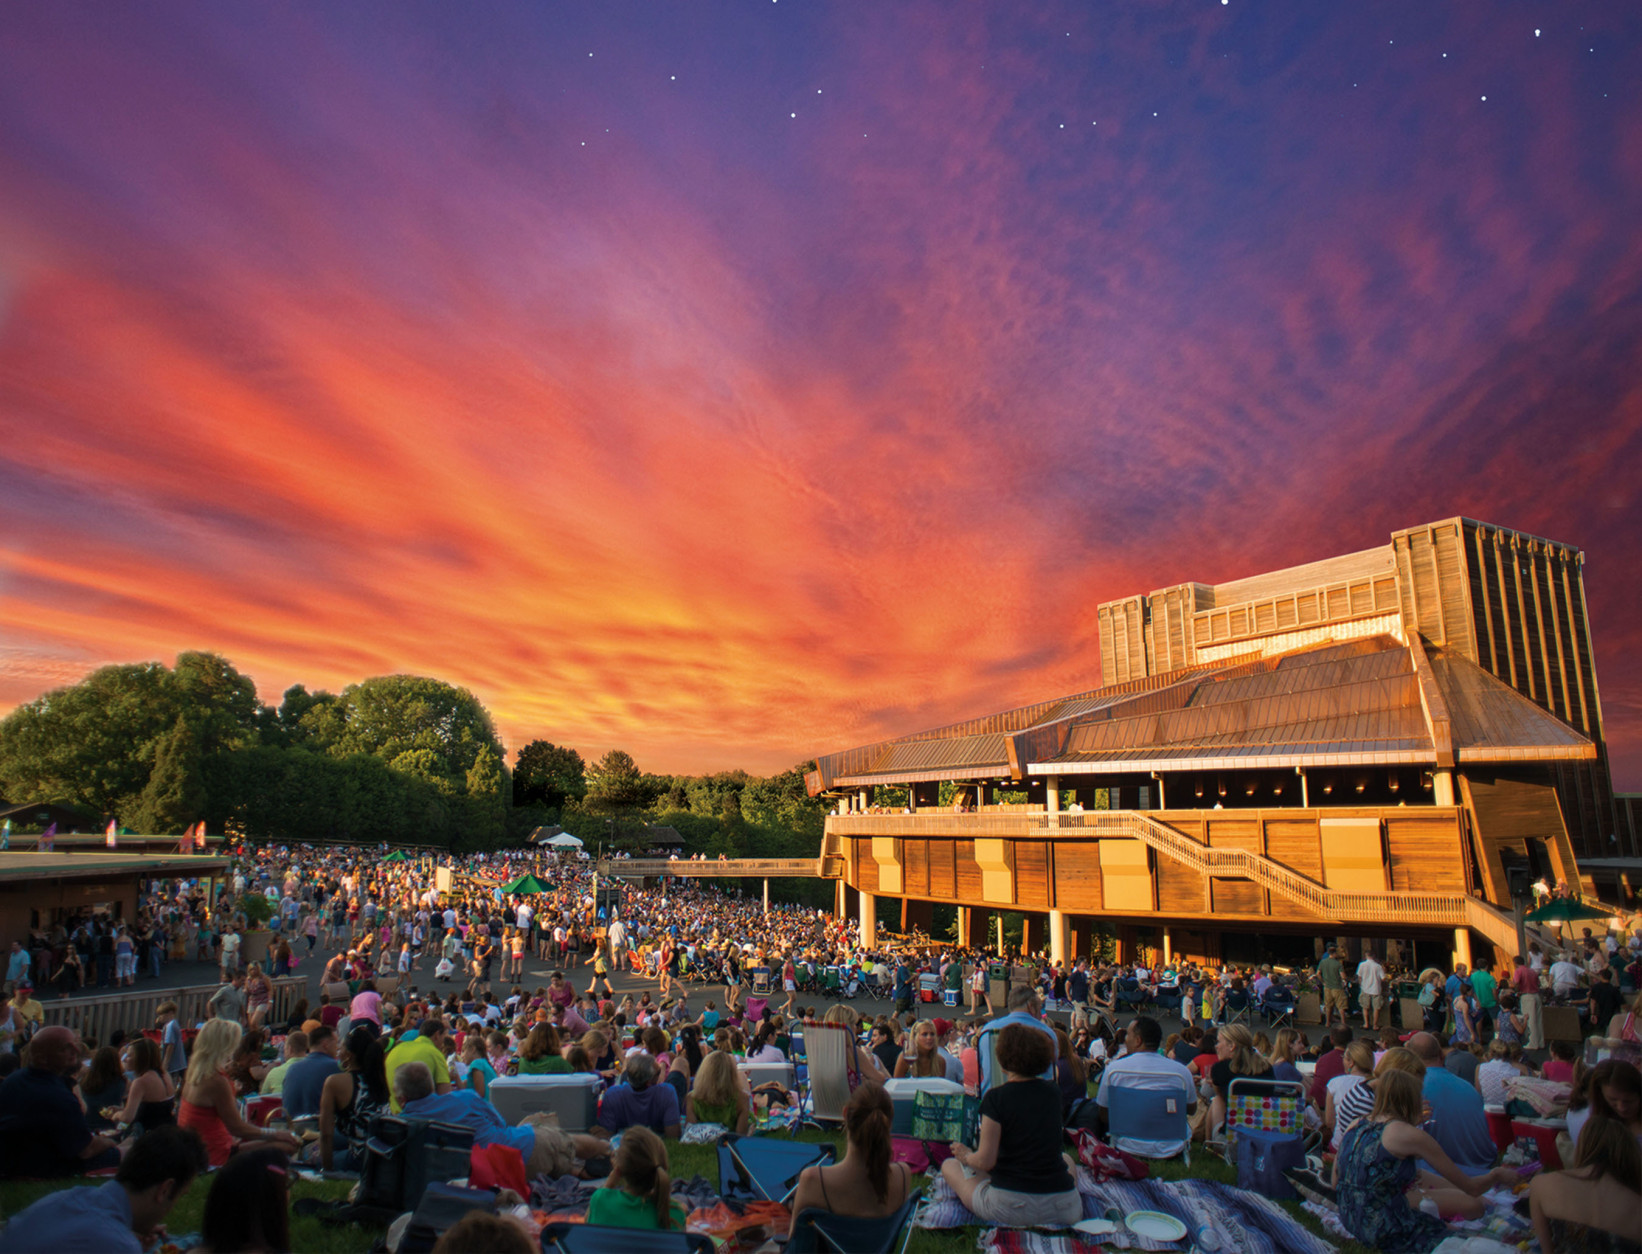 Filene Center at Wolf Trap National Park for the Performing Arts.  (PRNewsFoto/Wolf Trap Foundation for the Performing Arts) THIS CONTENT IS PROVIDED BY PRNewsfoto and is for EDITORIAL USE ONLY**